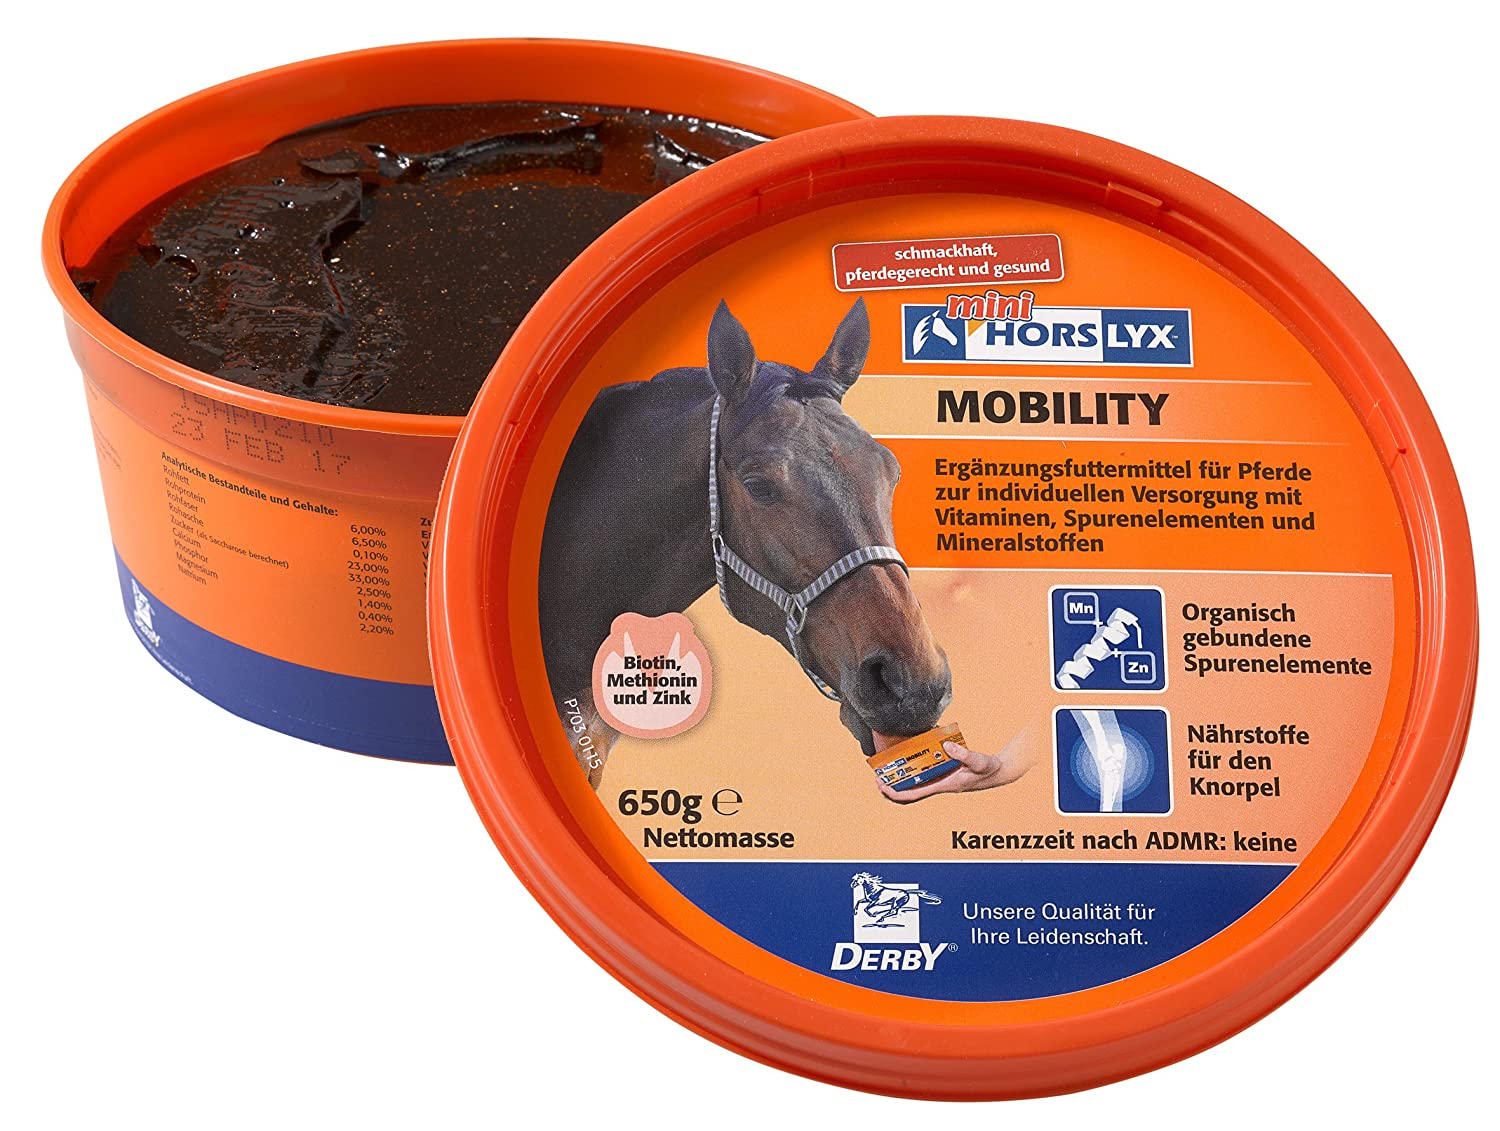 Derby horslyx Mobility 650g